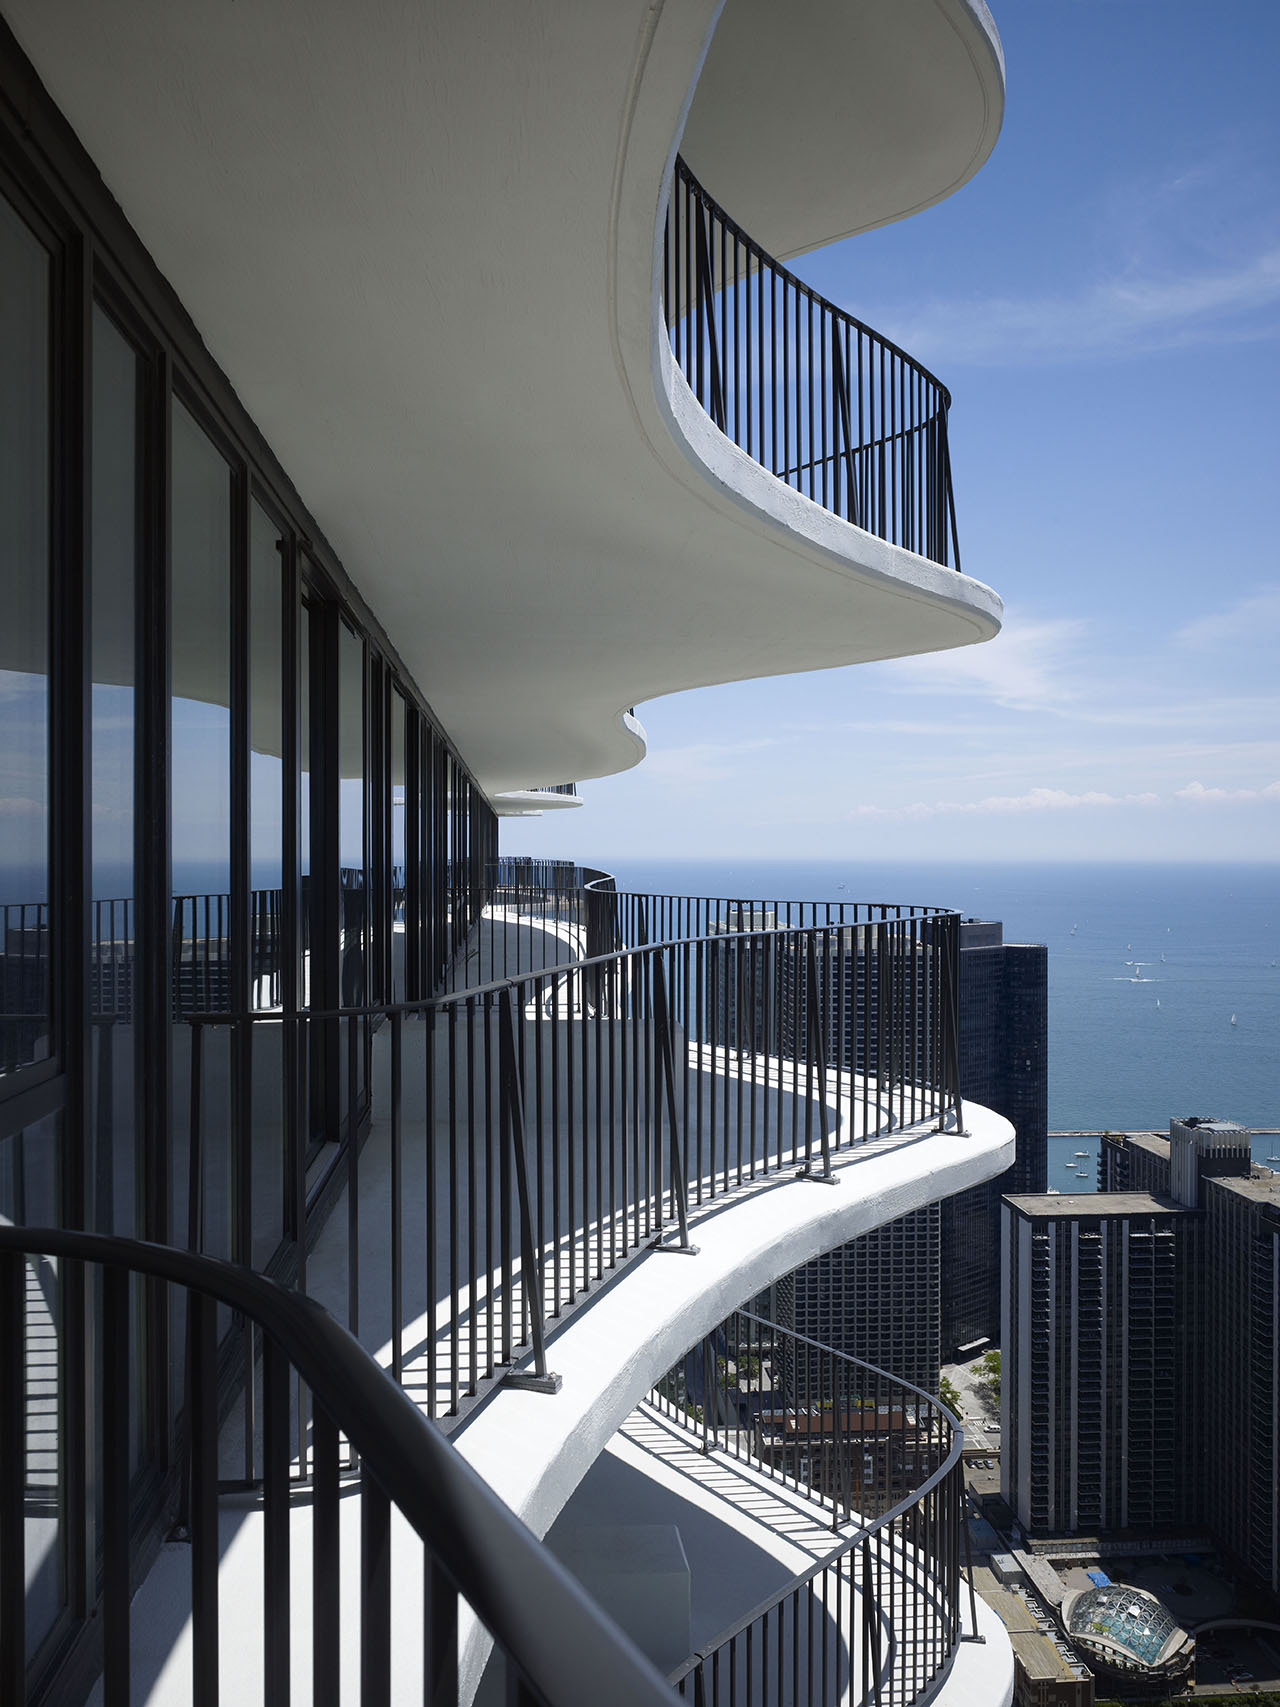 Sinuous cantilevered terraces